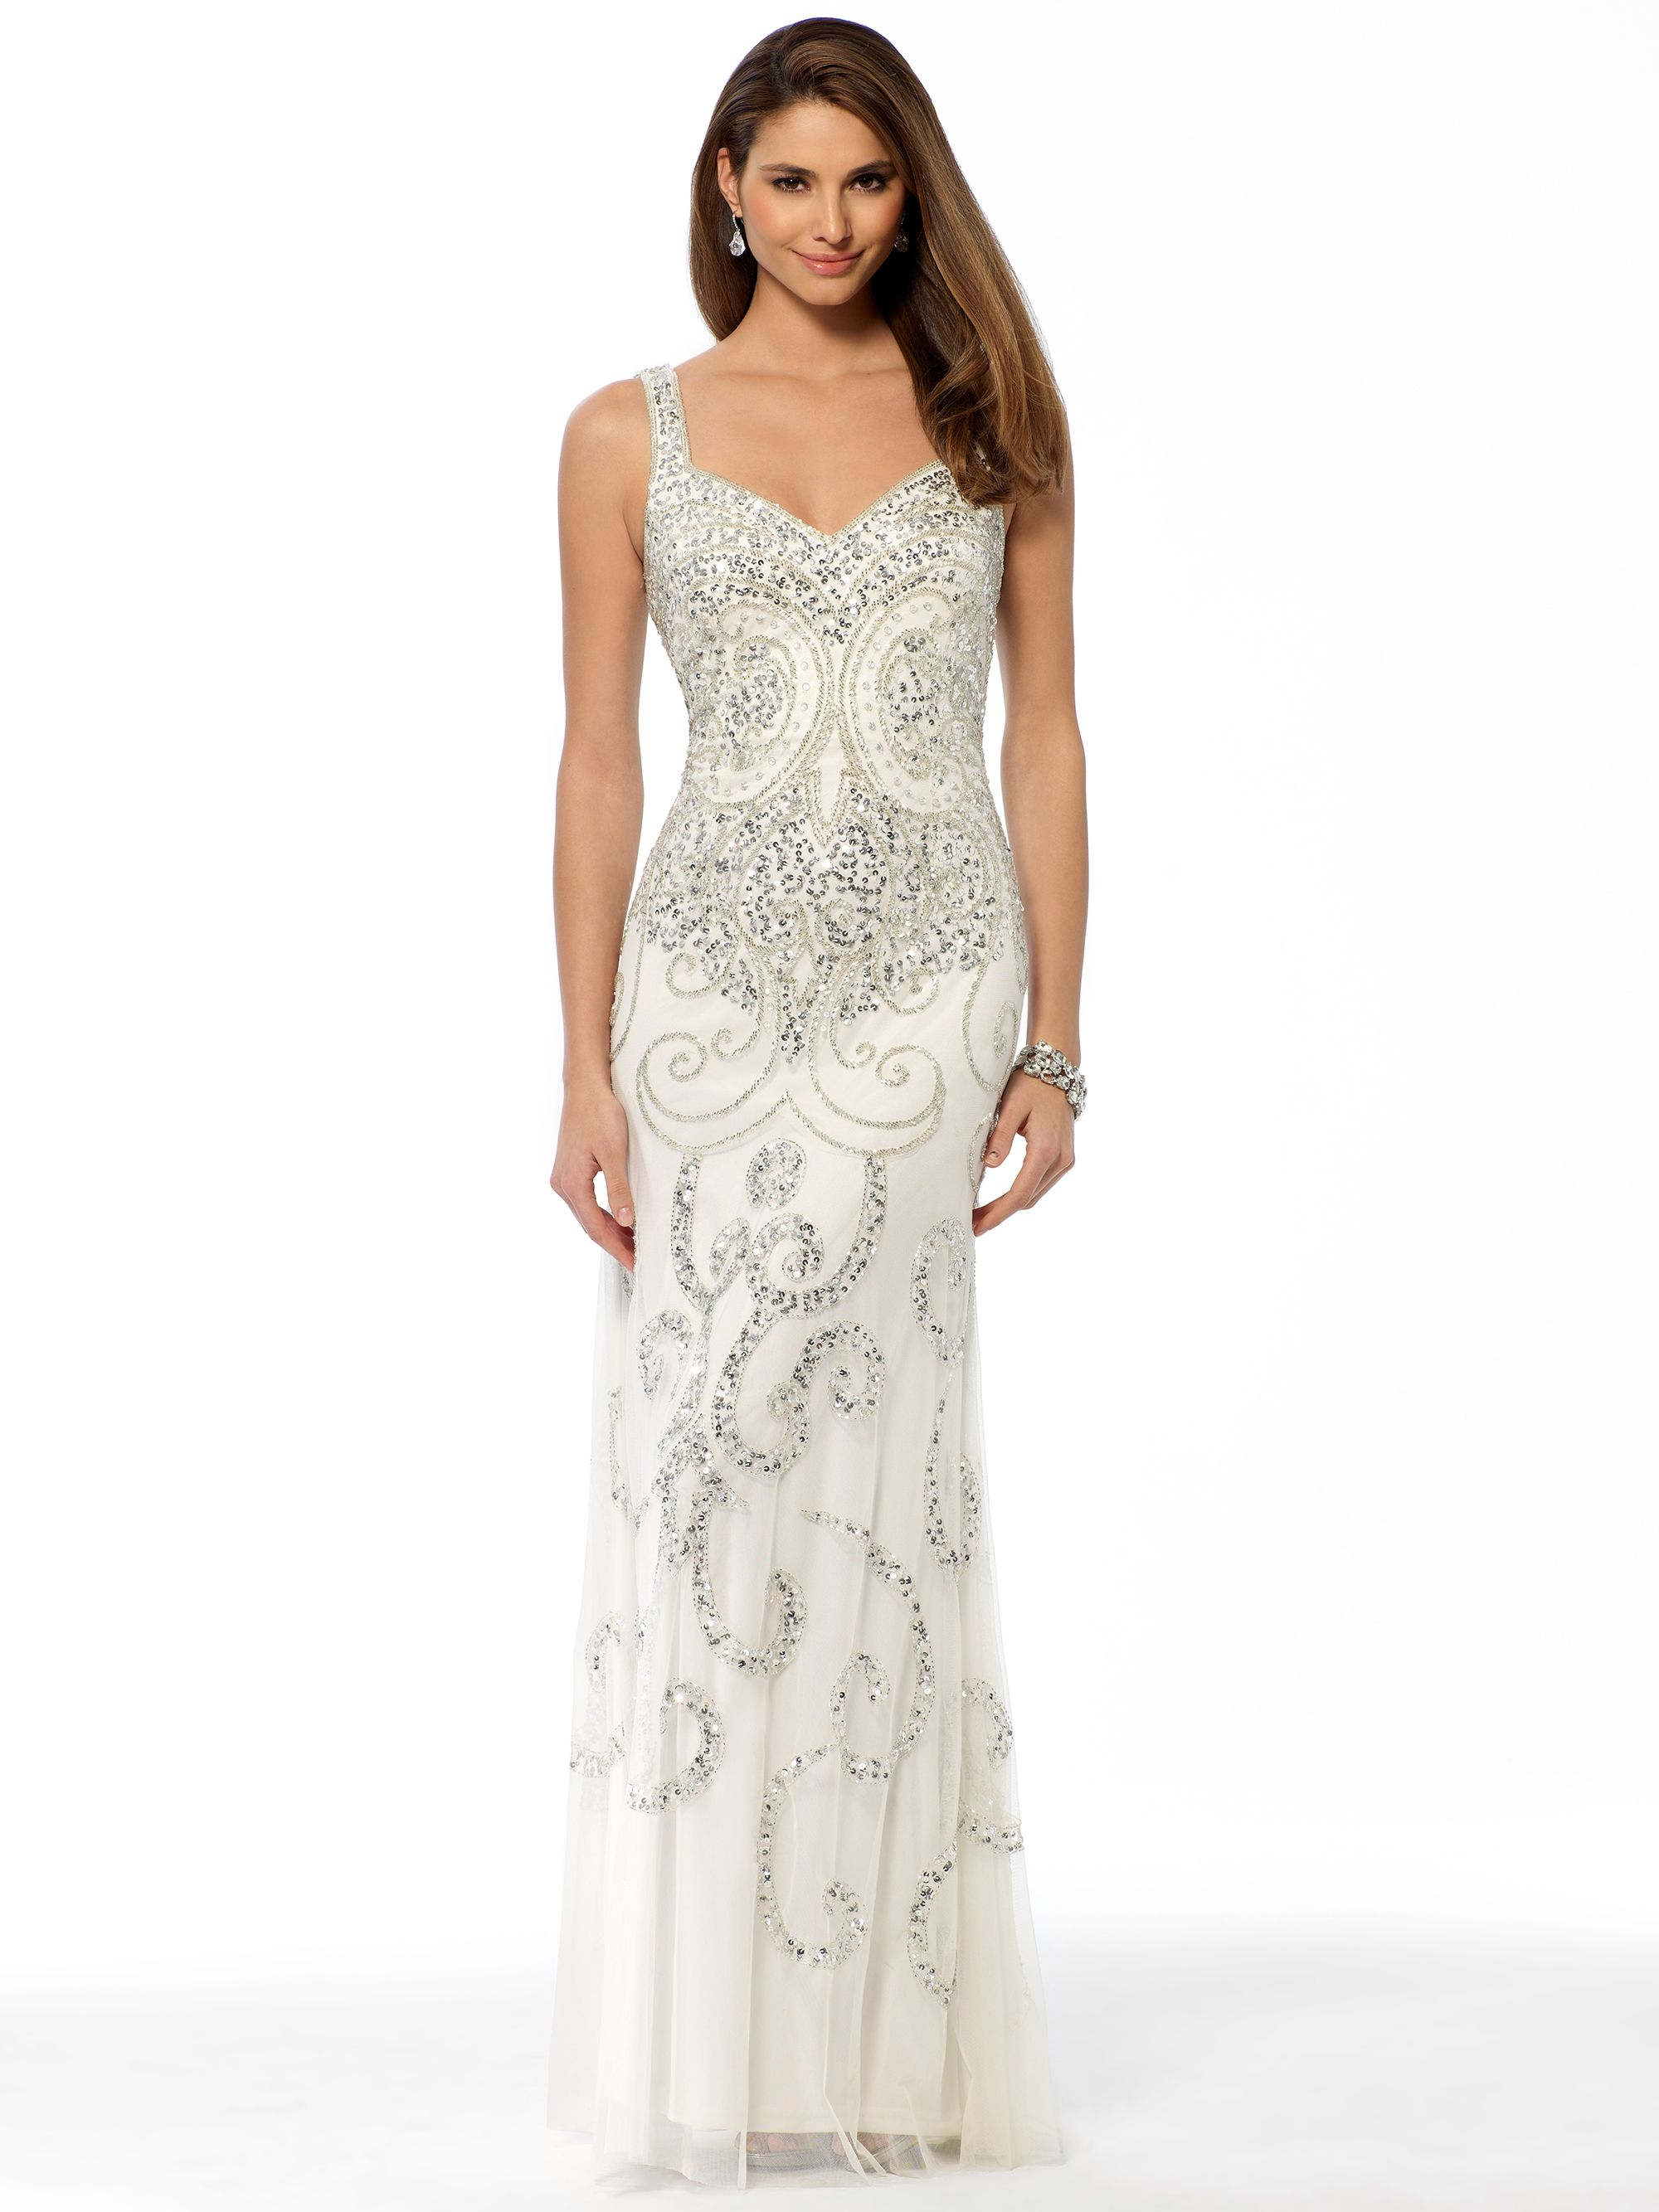 The first thing I think when I see this Cache gown is 'princess ...